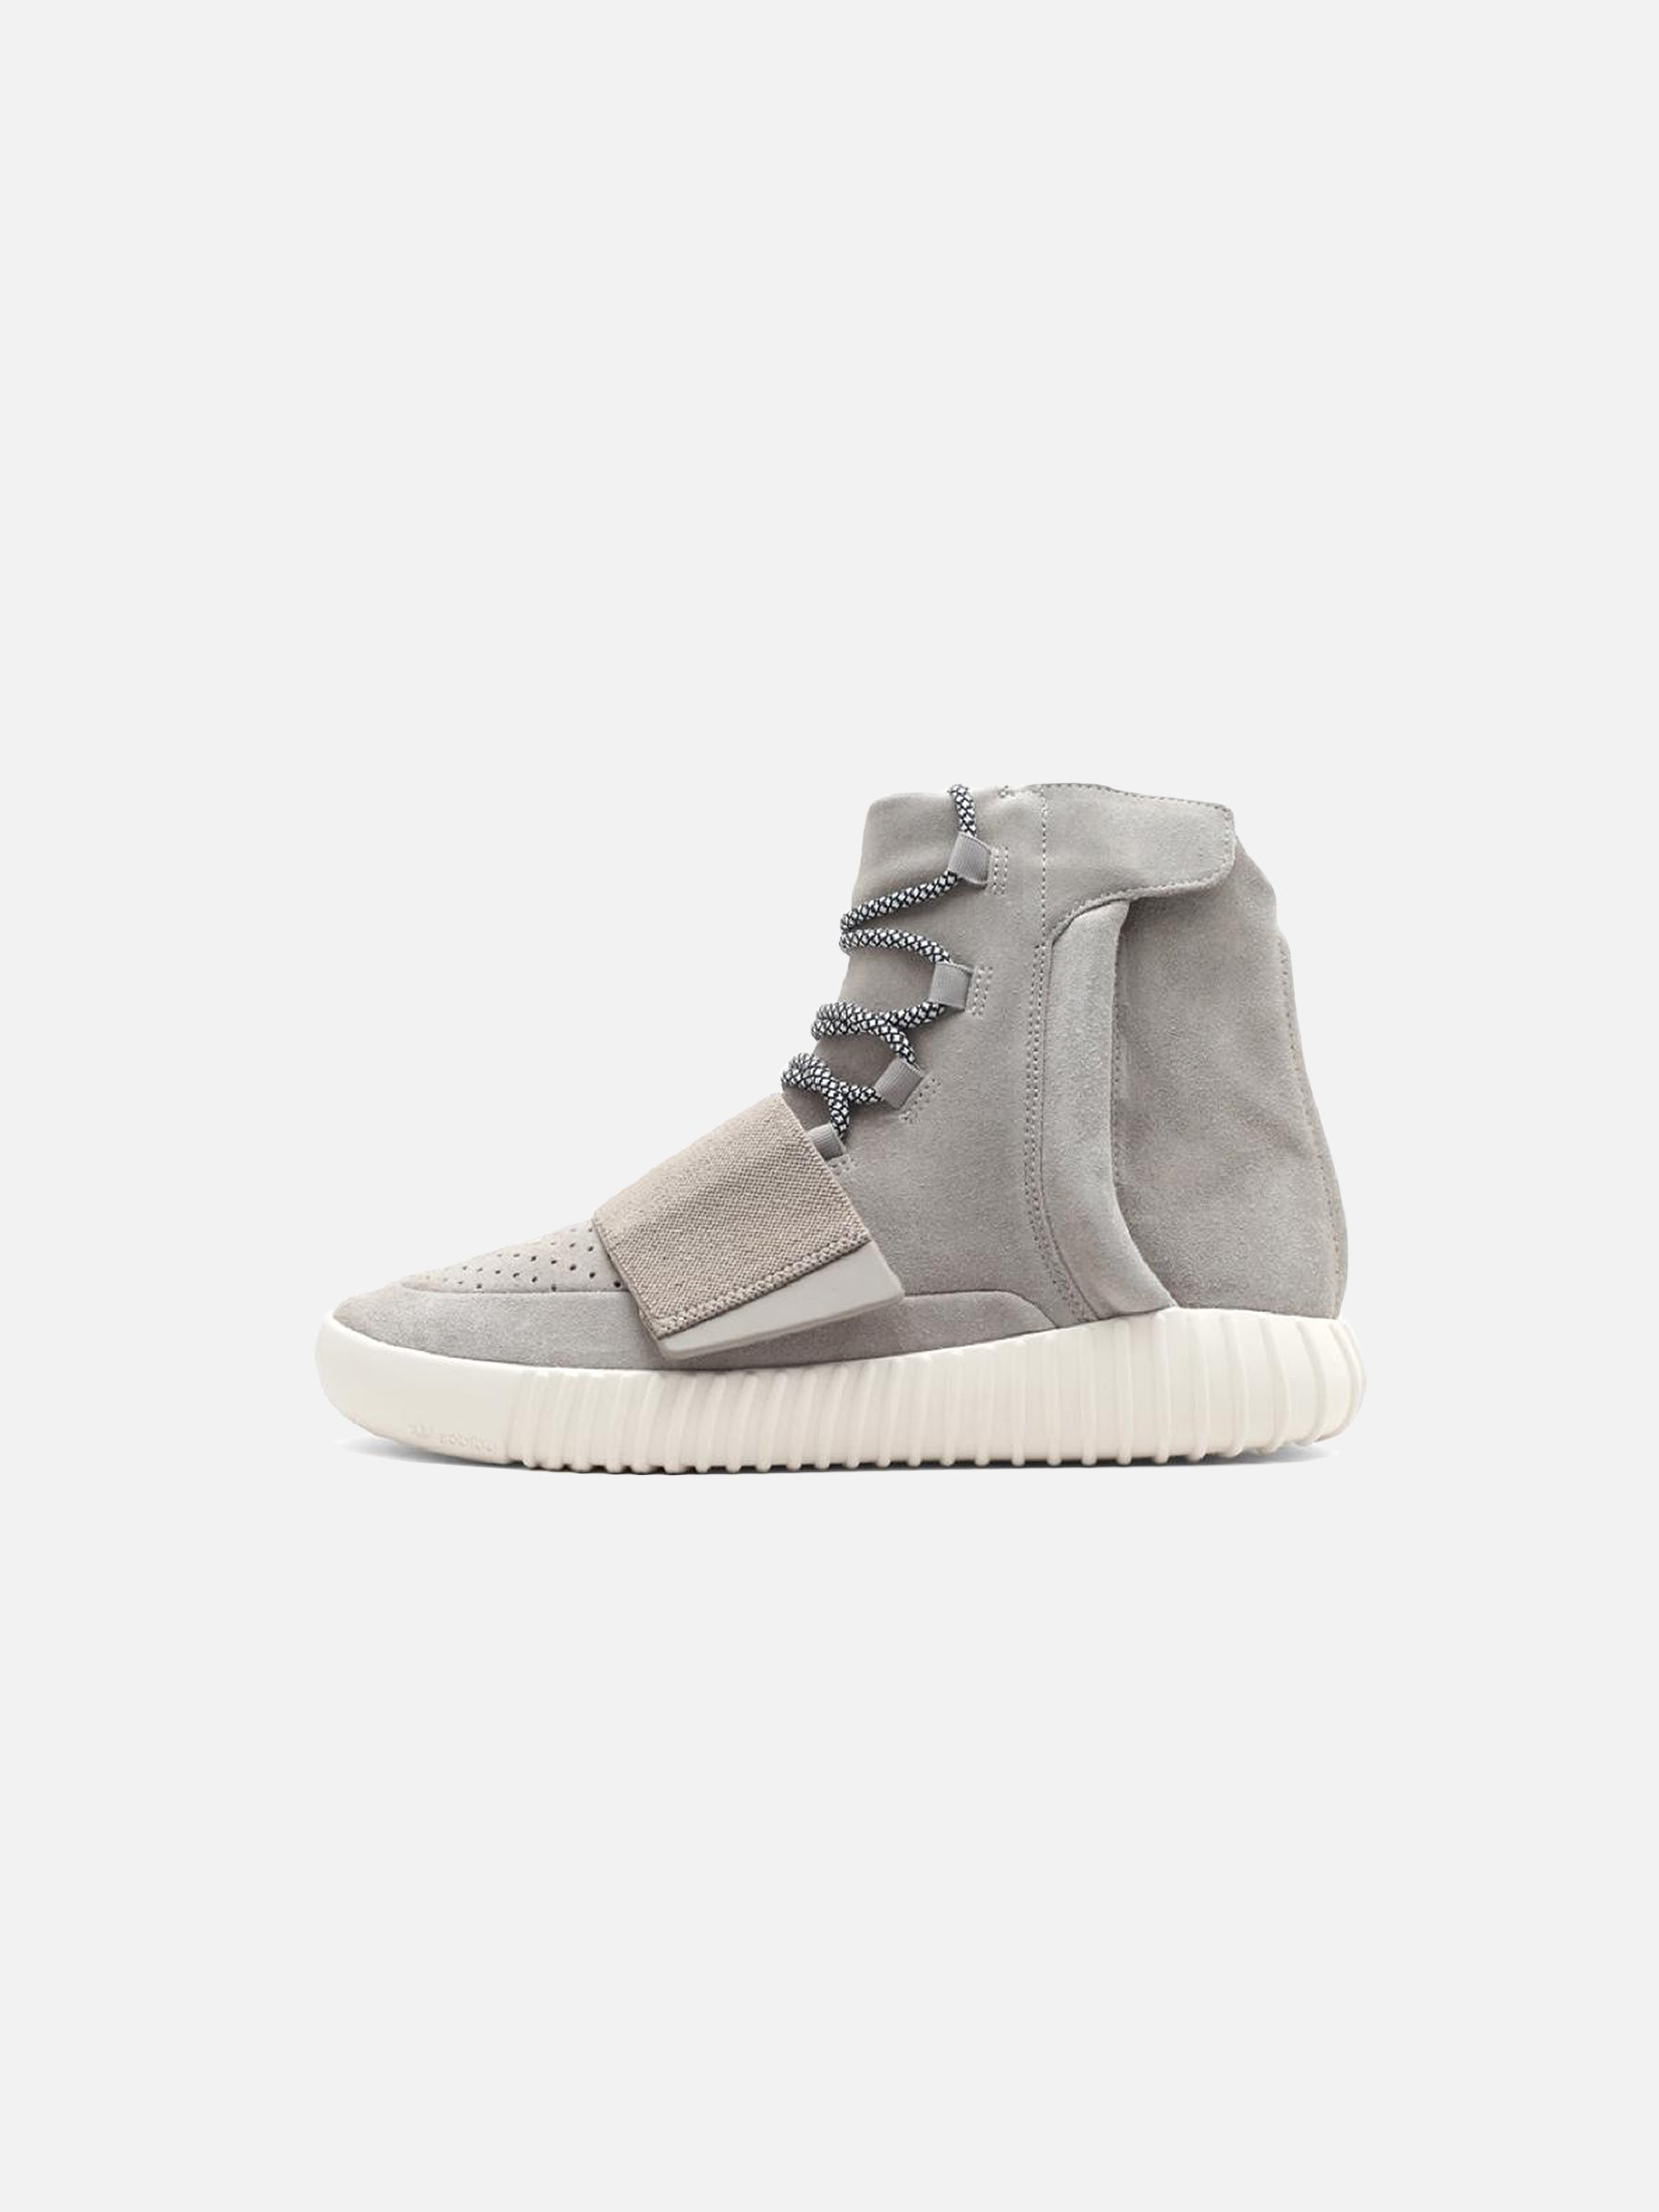 Yeezy Boost 750 Light Brown OG